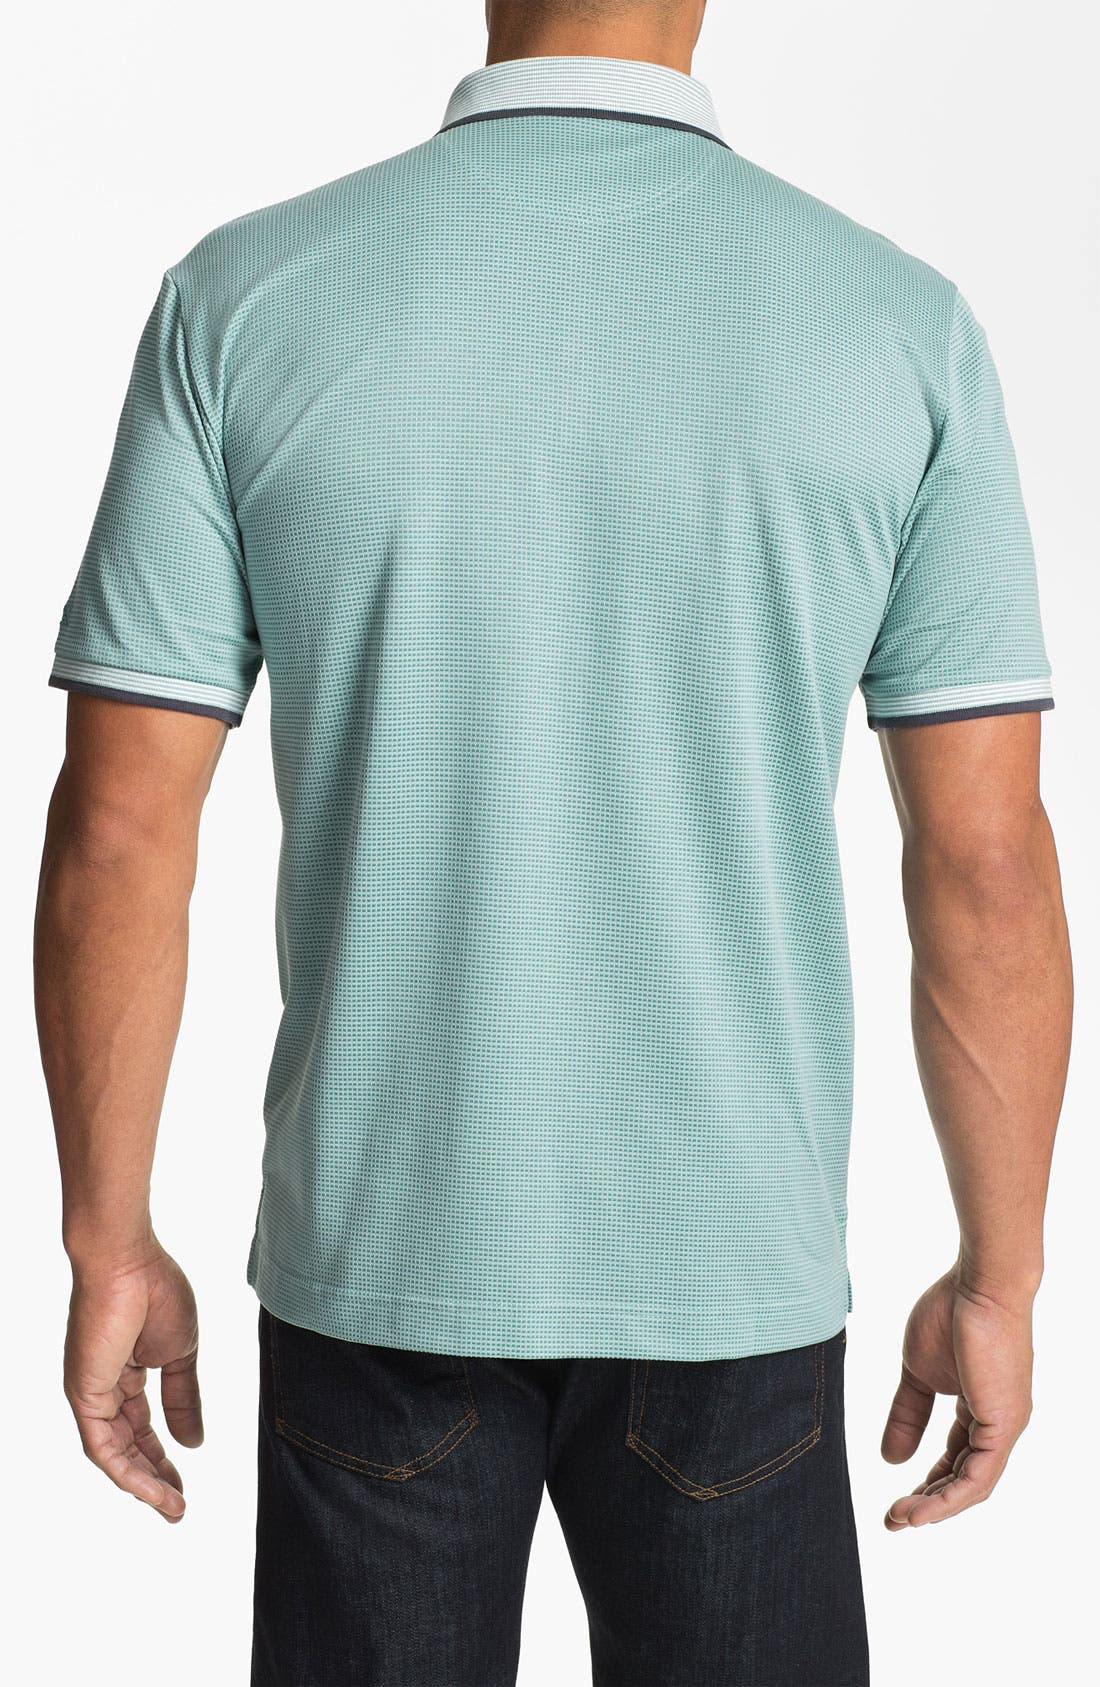 Alternate Image 2  - Cutter & Buck 'Luxe - Shaw' DryTec Golf Polo (Big & Tall) (Online Only)